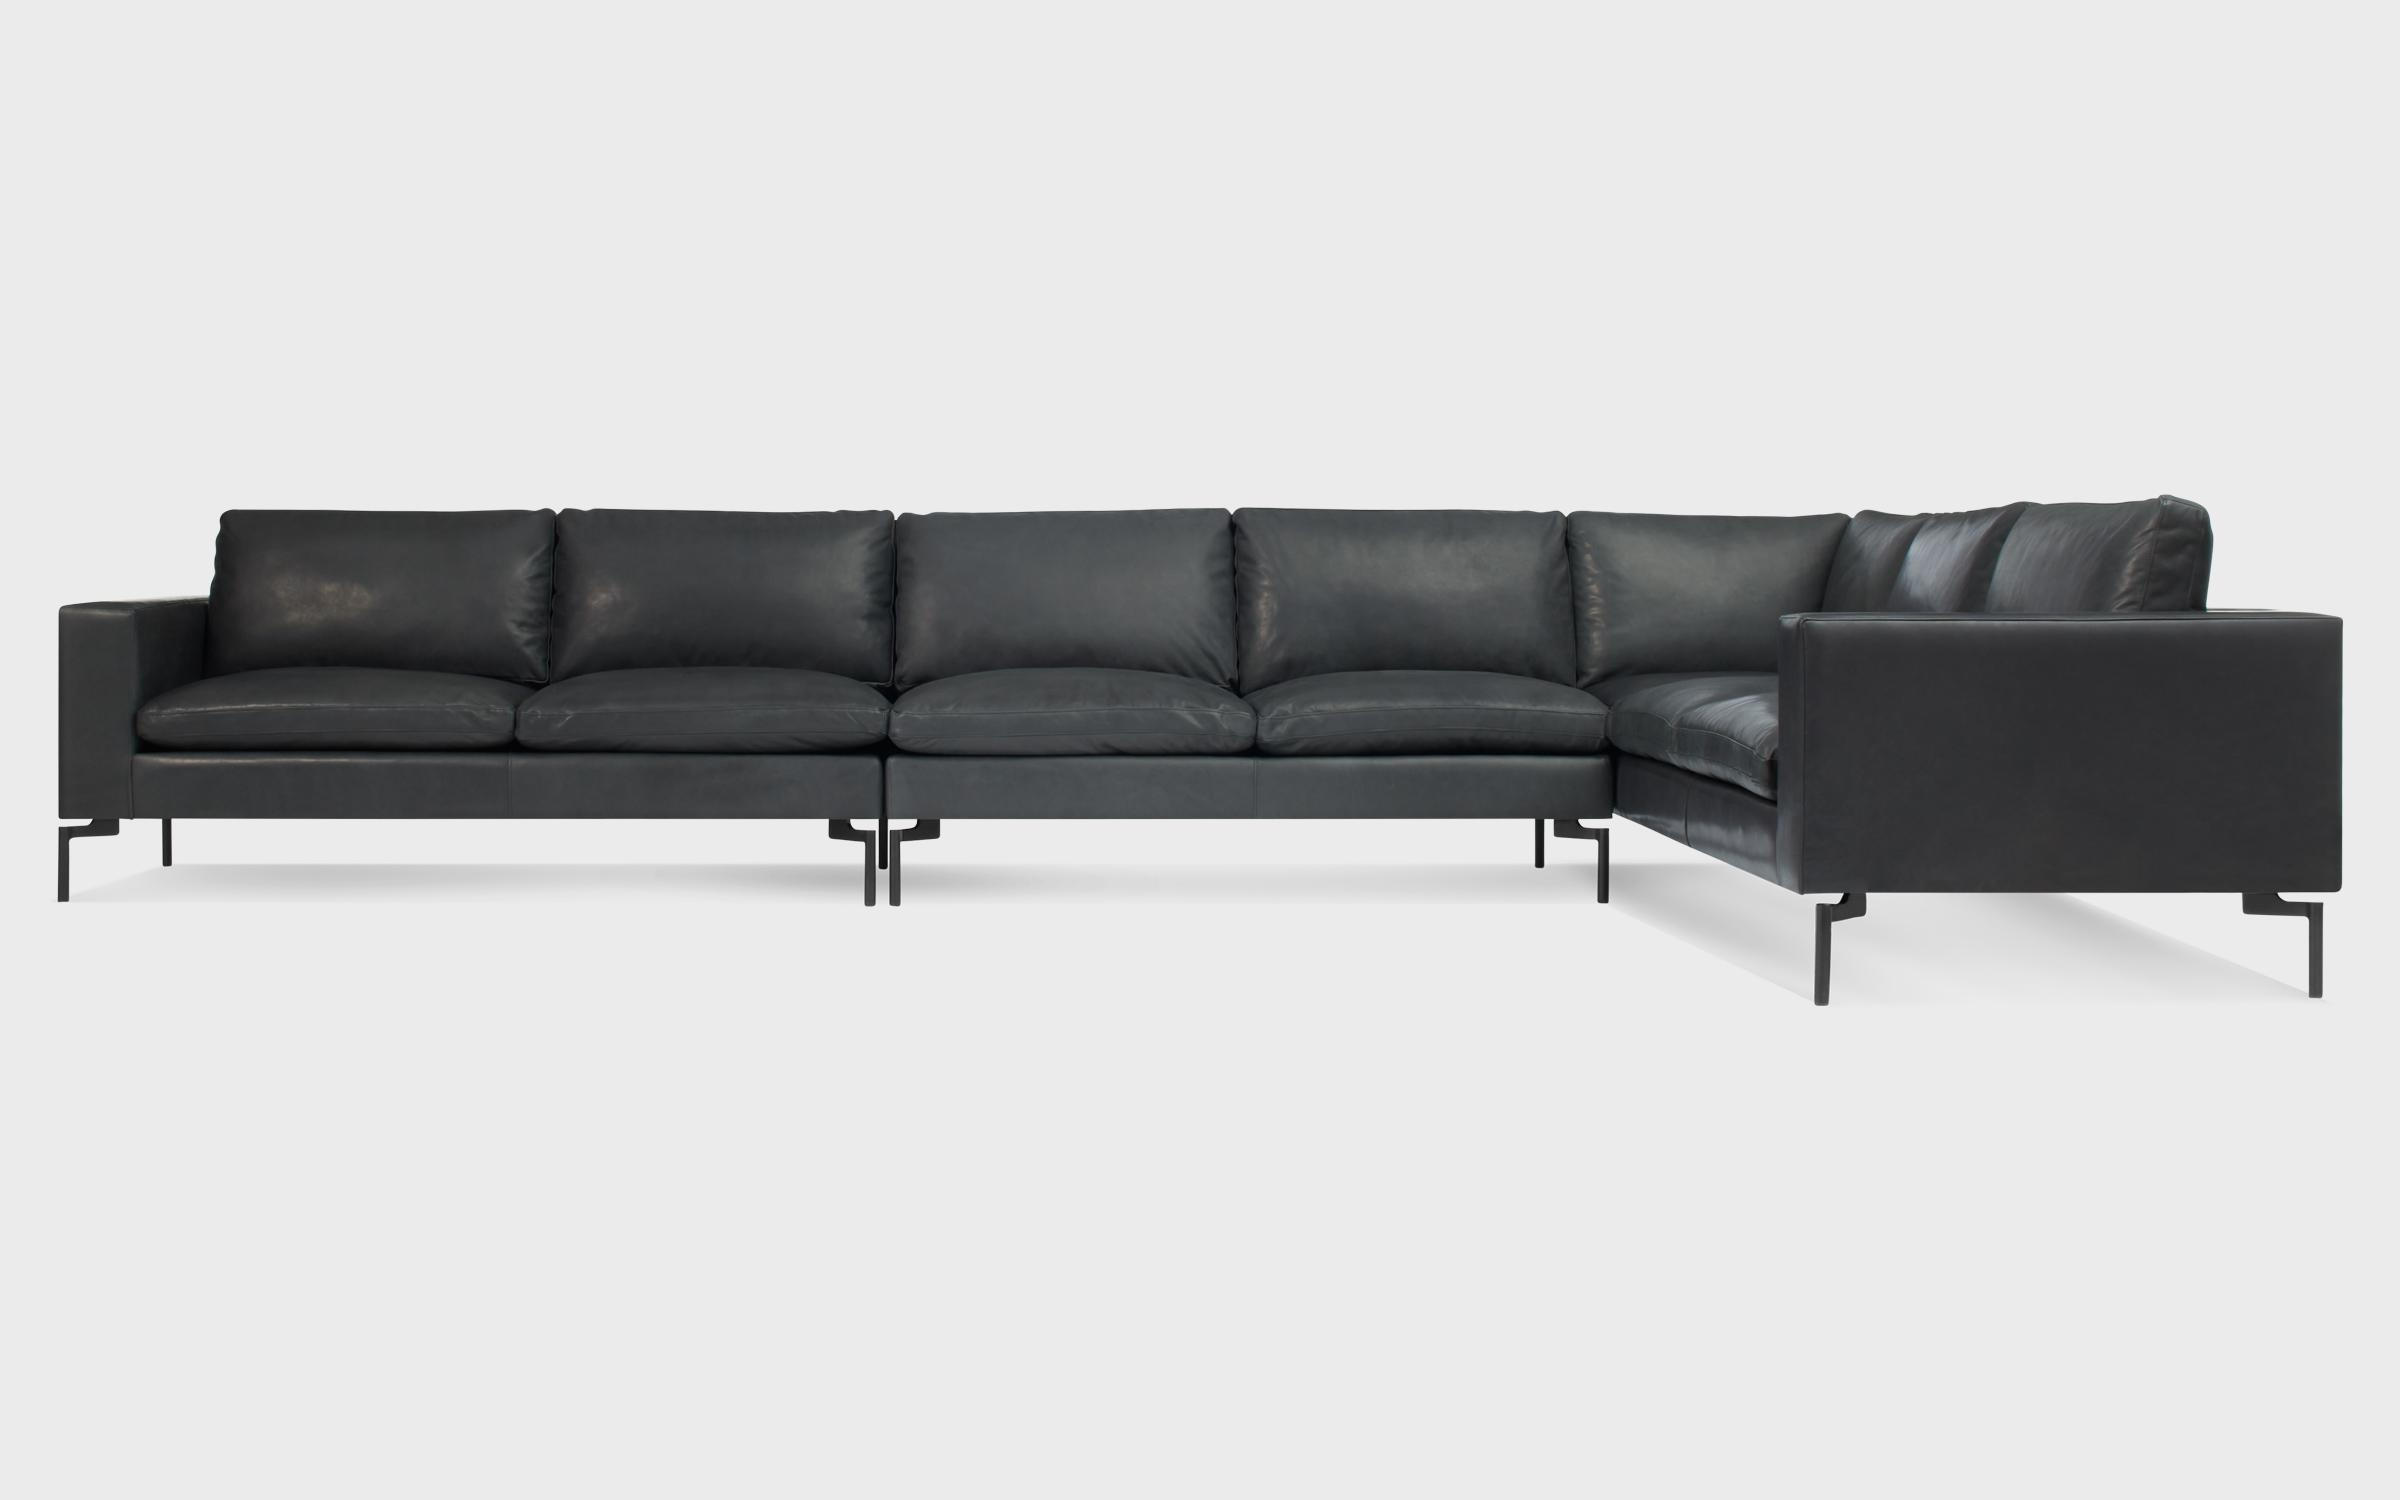 New Standard Large Leather Right Sectional Sofa | Blu Dot Pertaining To High Quality Leather Sectional (Image 11 of 20)